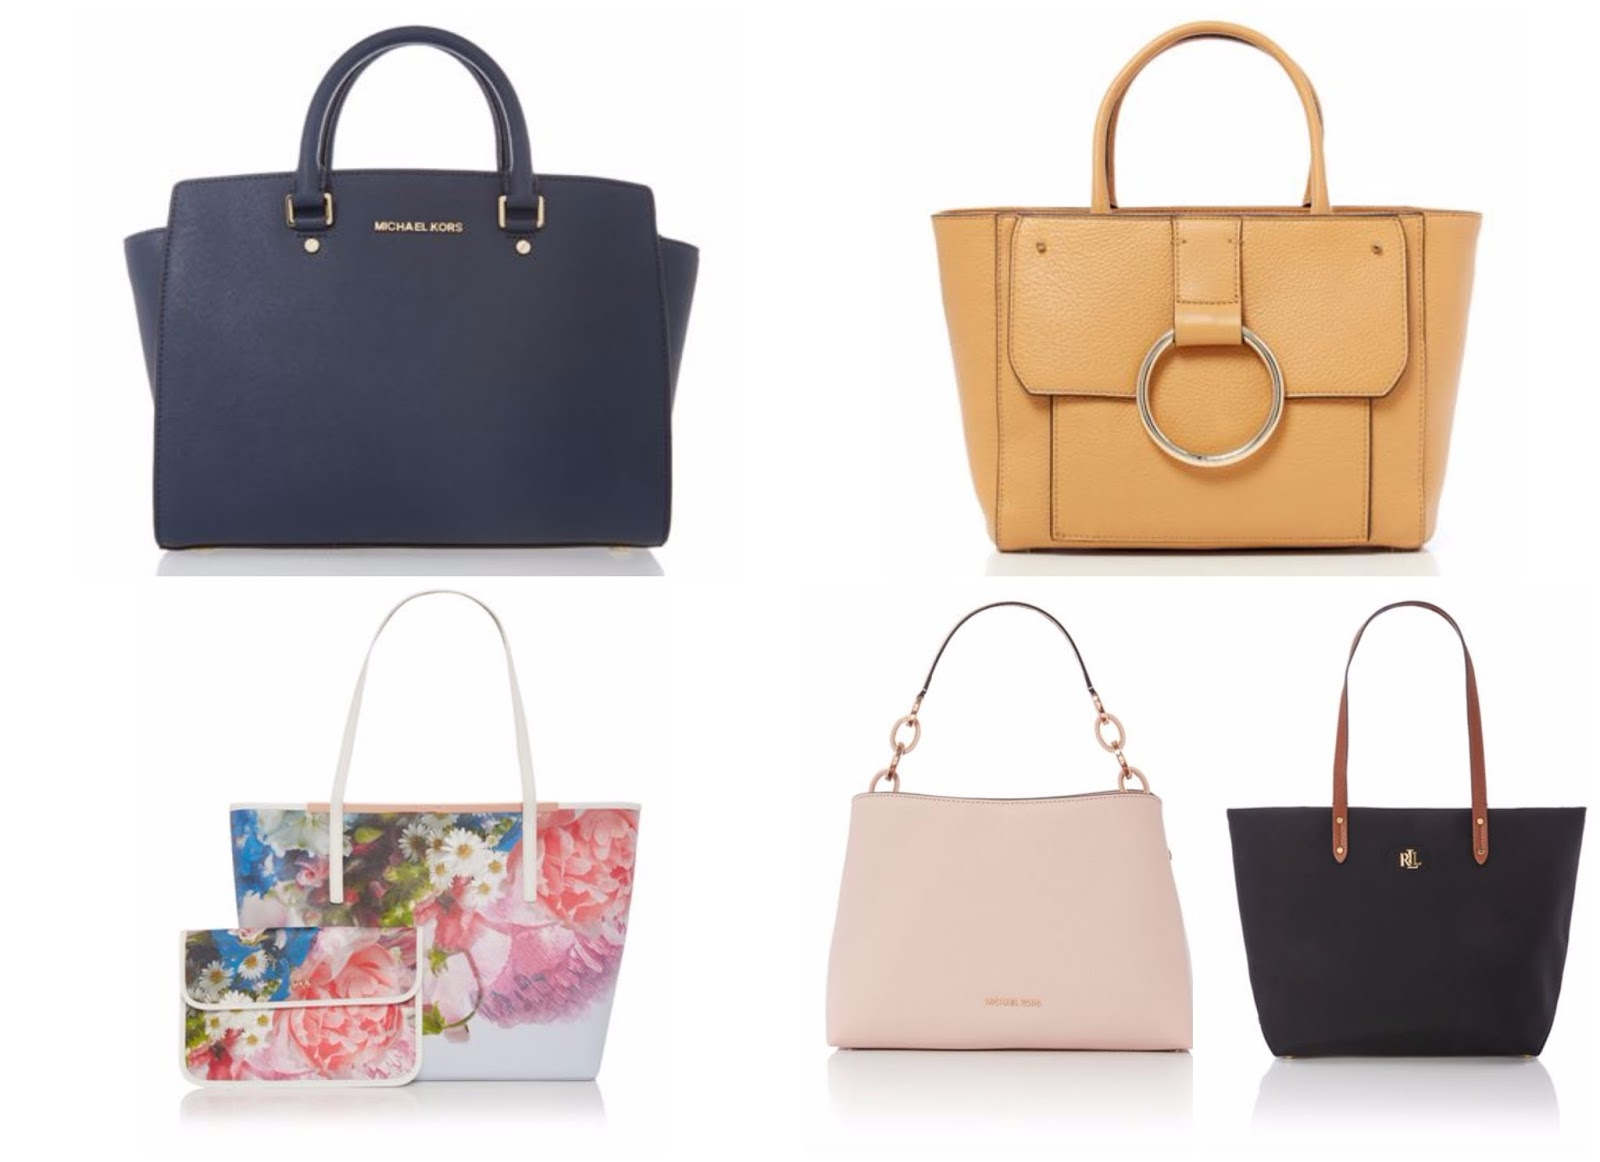 Top 5 Tote Bags From House Of Fraser